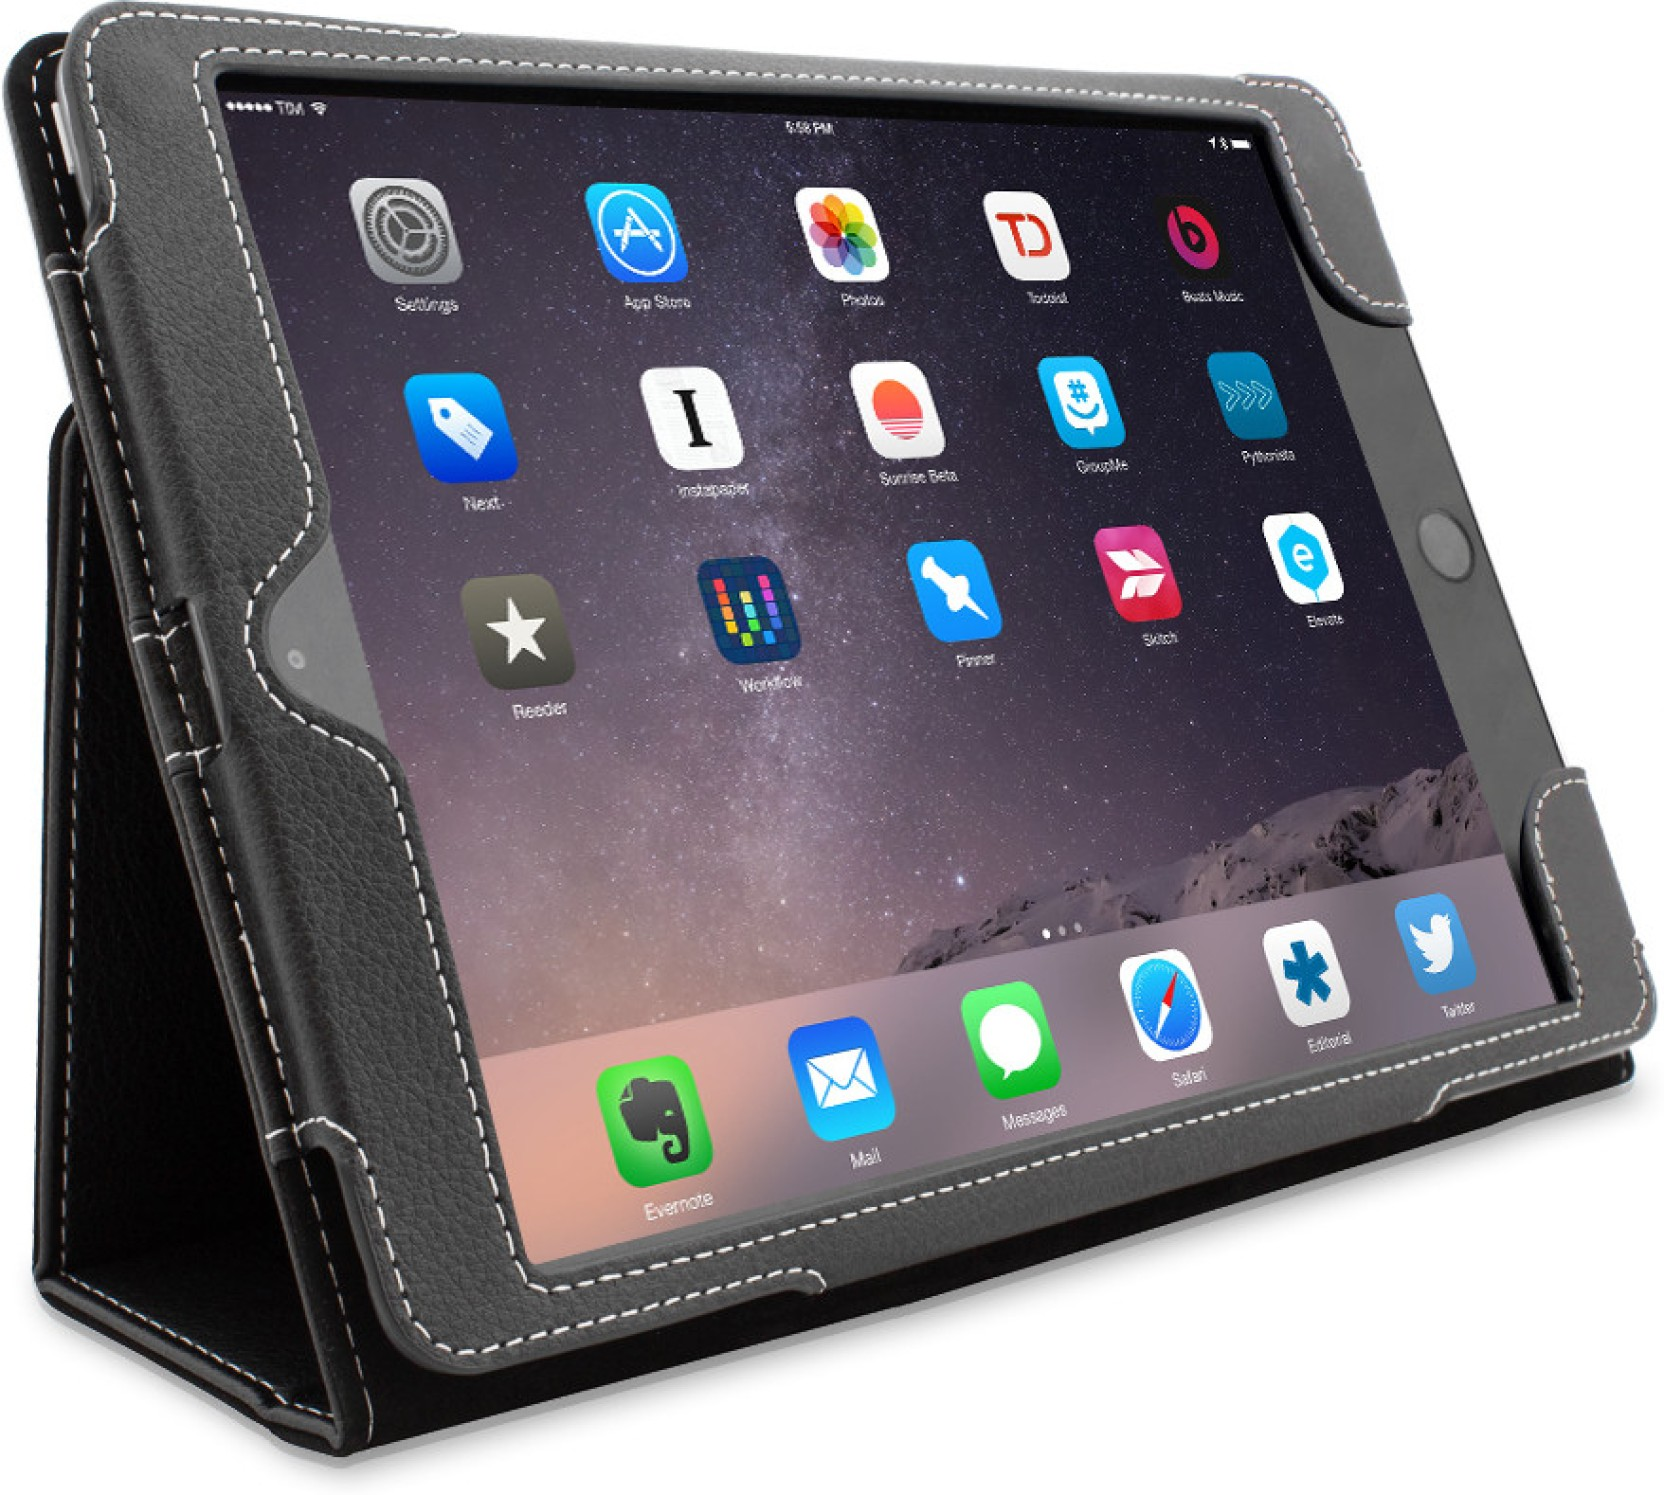 Nov 29, · Best iPad mini case review Snugg iPad mini Leather Case Cover and Flip Stand (orange) - Duration: ipadcasereview 13, views.